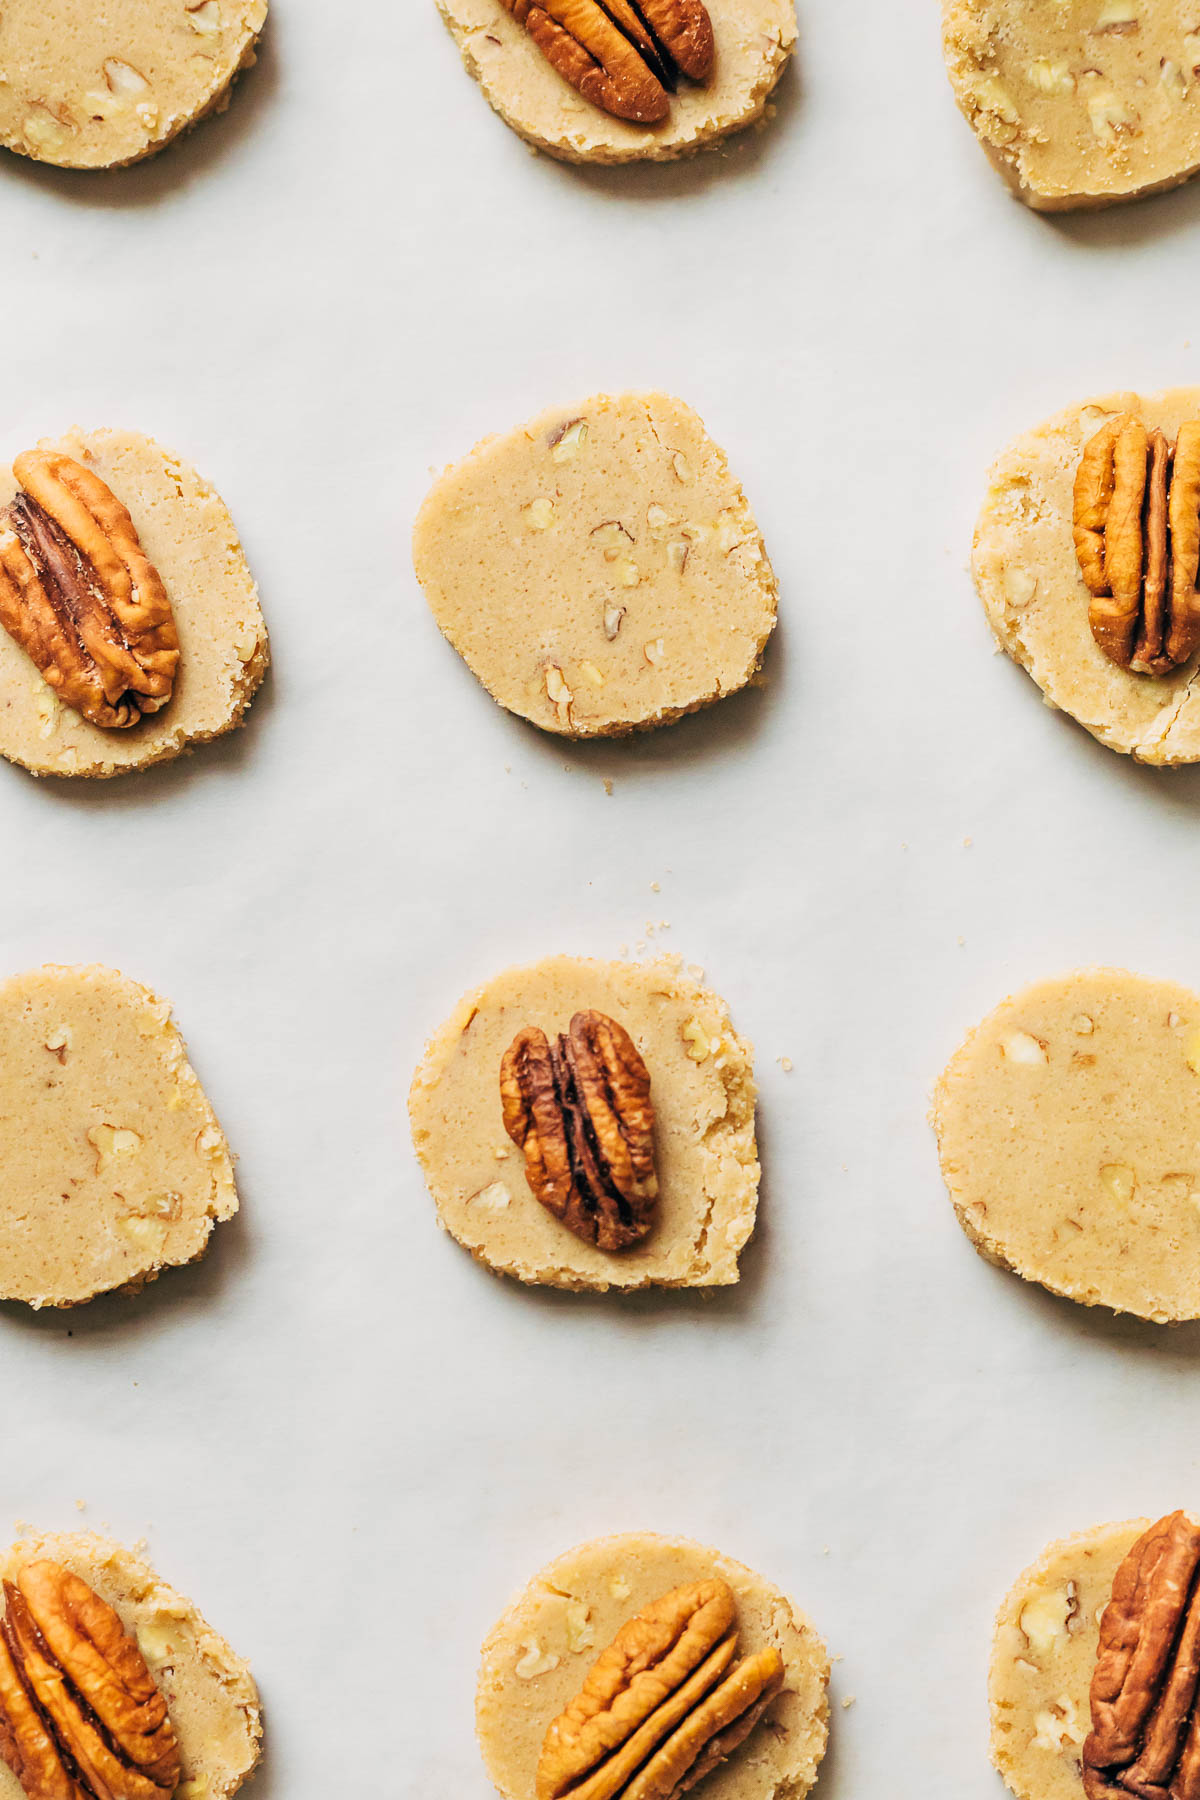 Unbaked sliced icebox cookies on parchment paper.